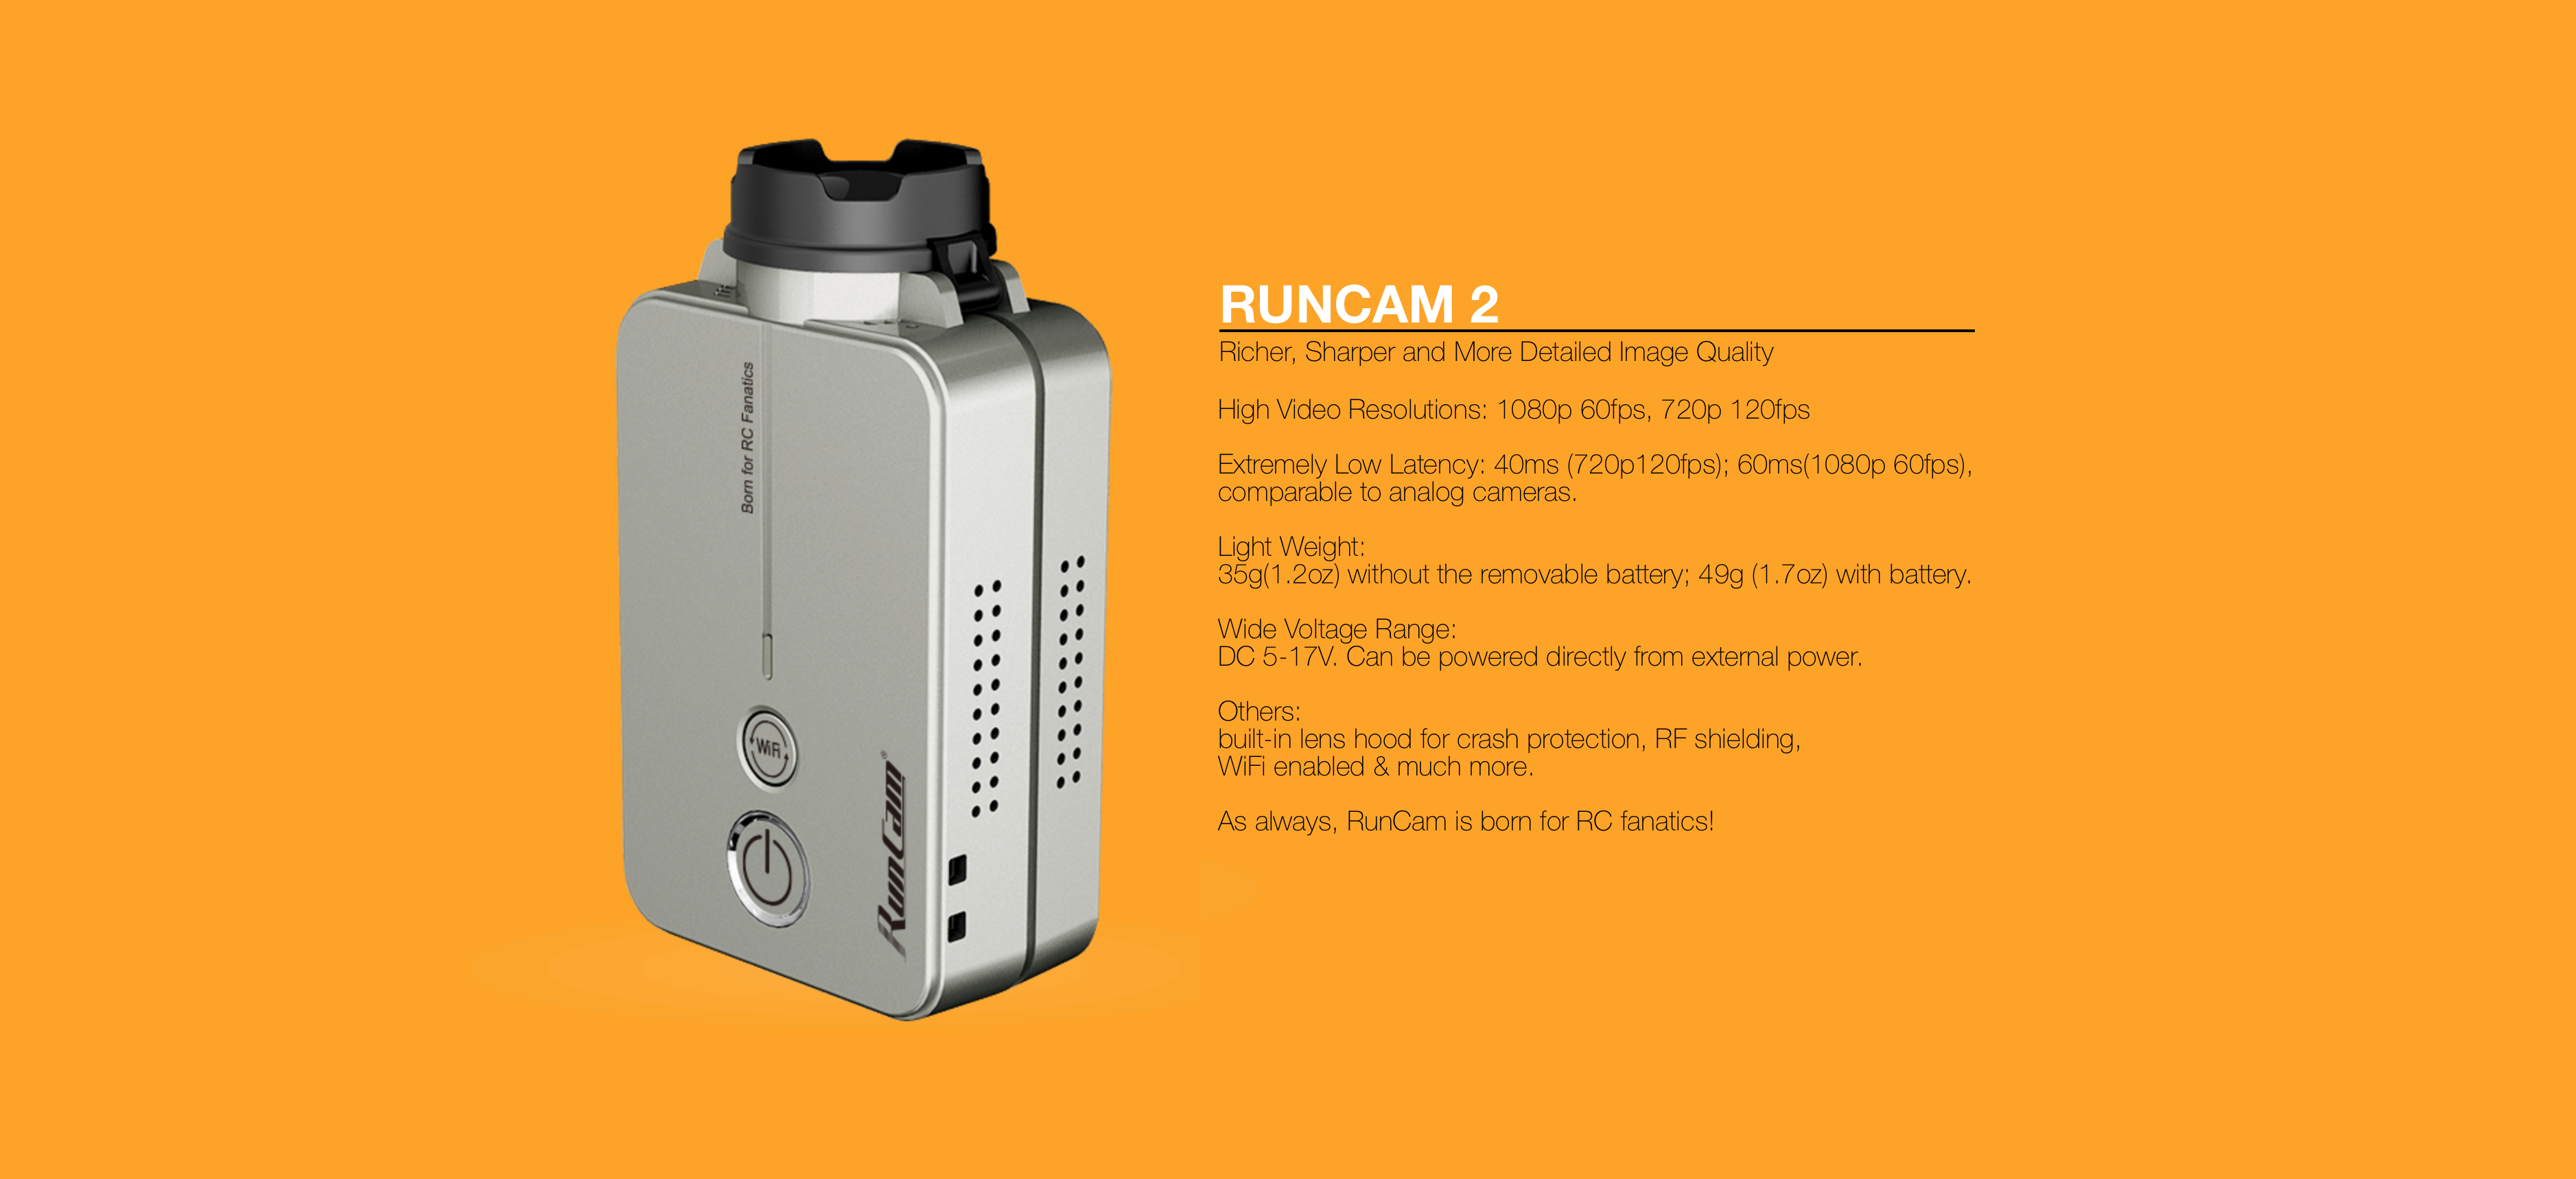 RunCam2 Specification